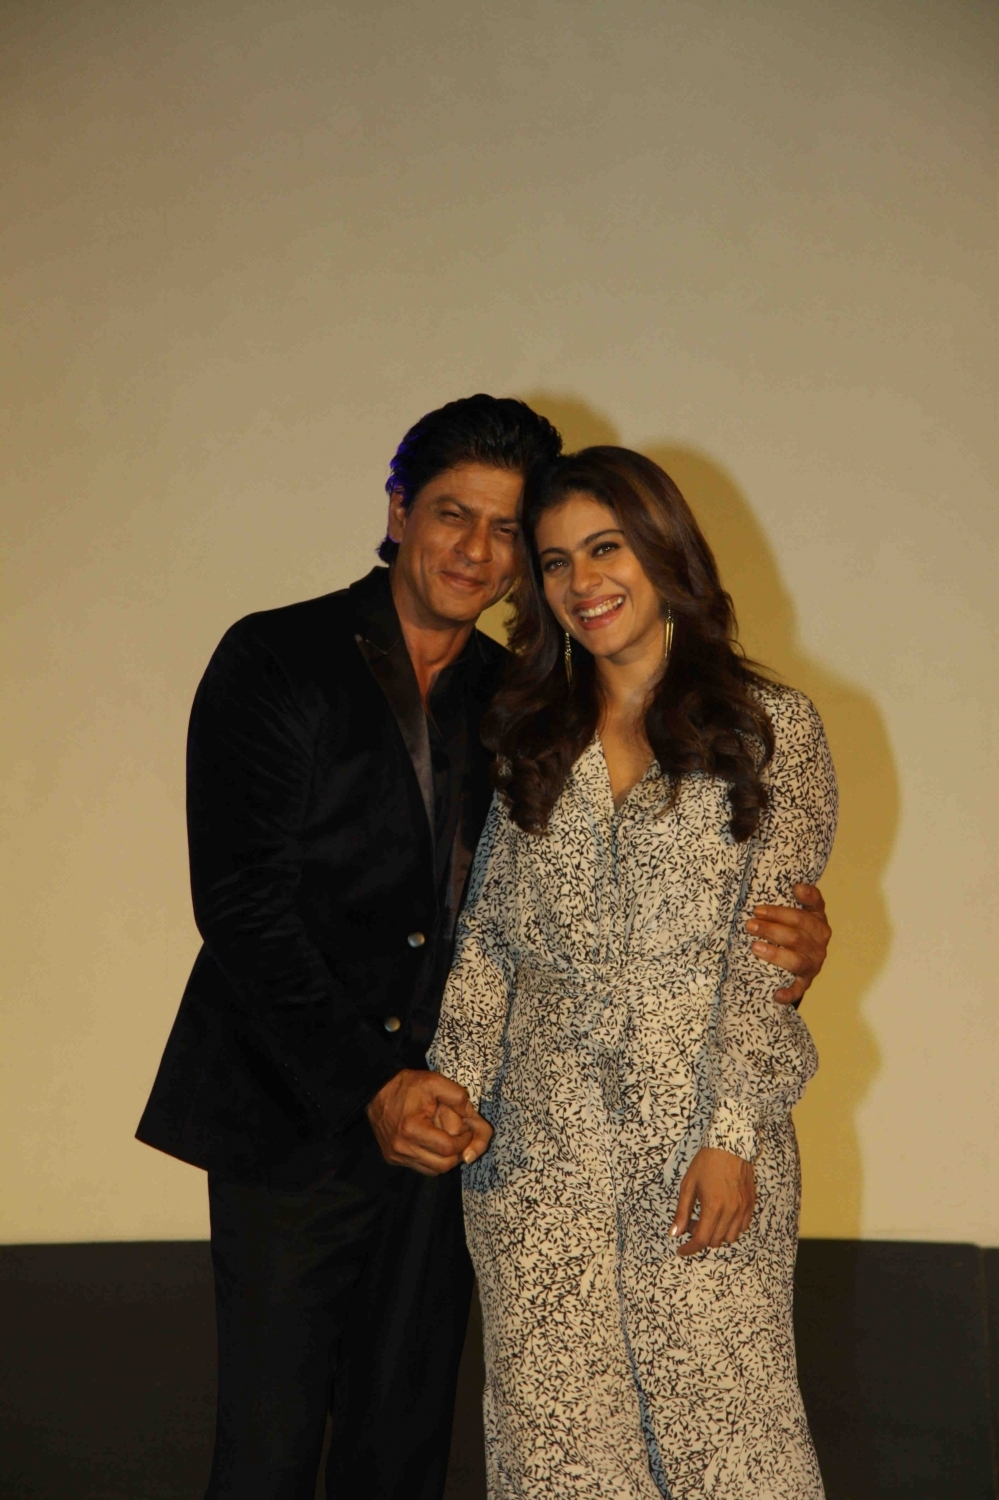 Shah Rukh Khan and Kajol at Song Launch of Film Dilwale in Mumbai-90